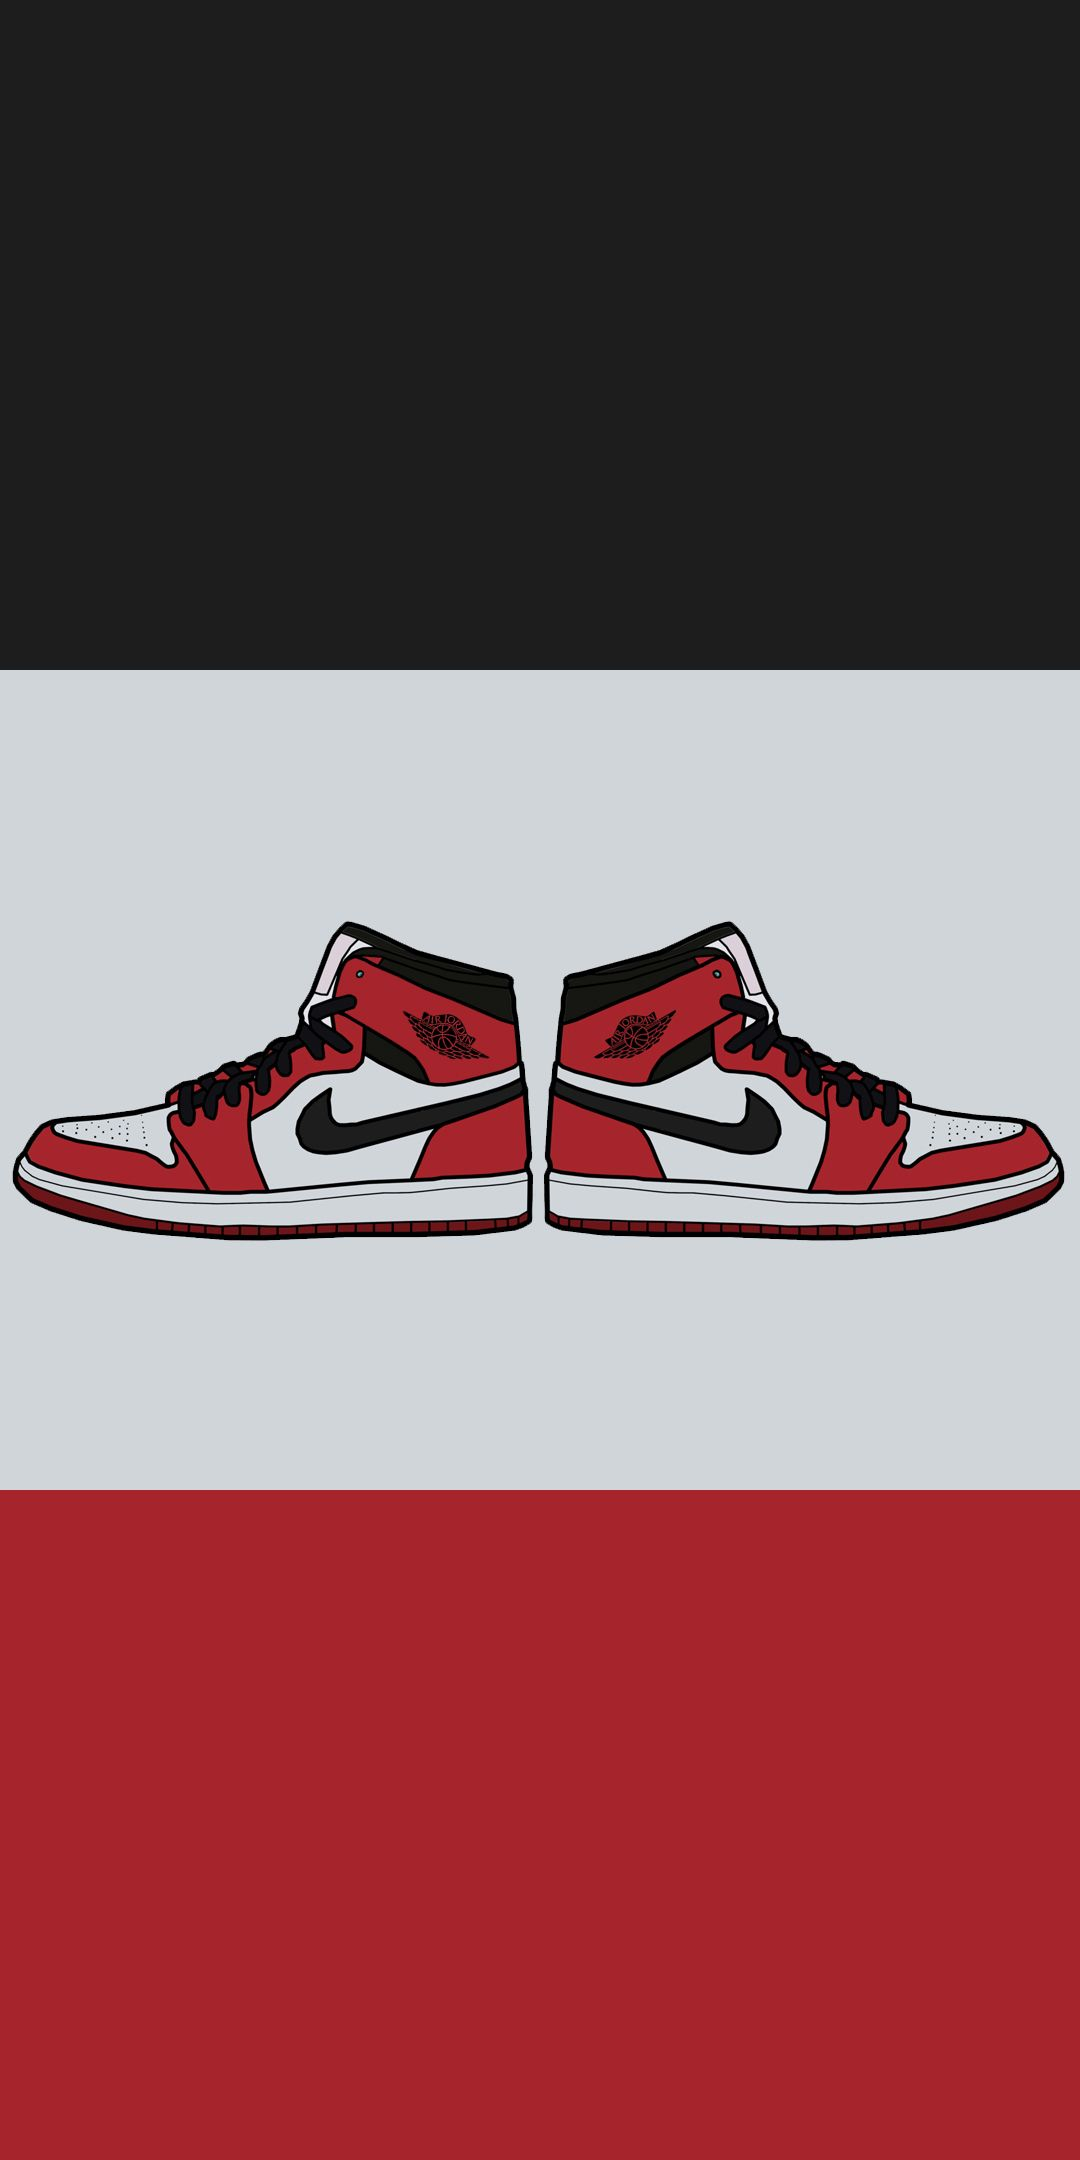 Wallpaper Nike Airjordan1 Chicagobulls Nba Shoes Jordan